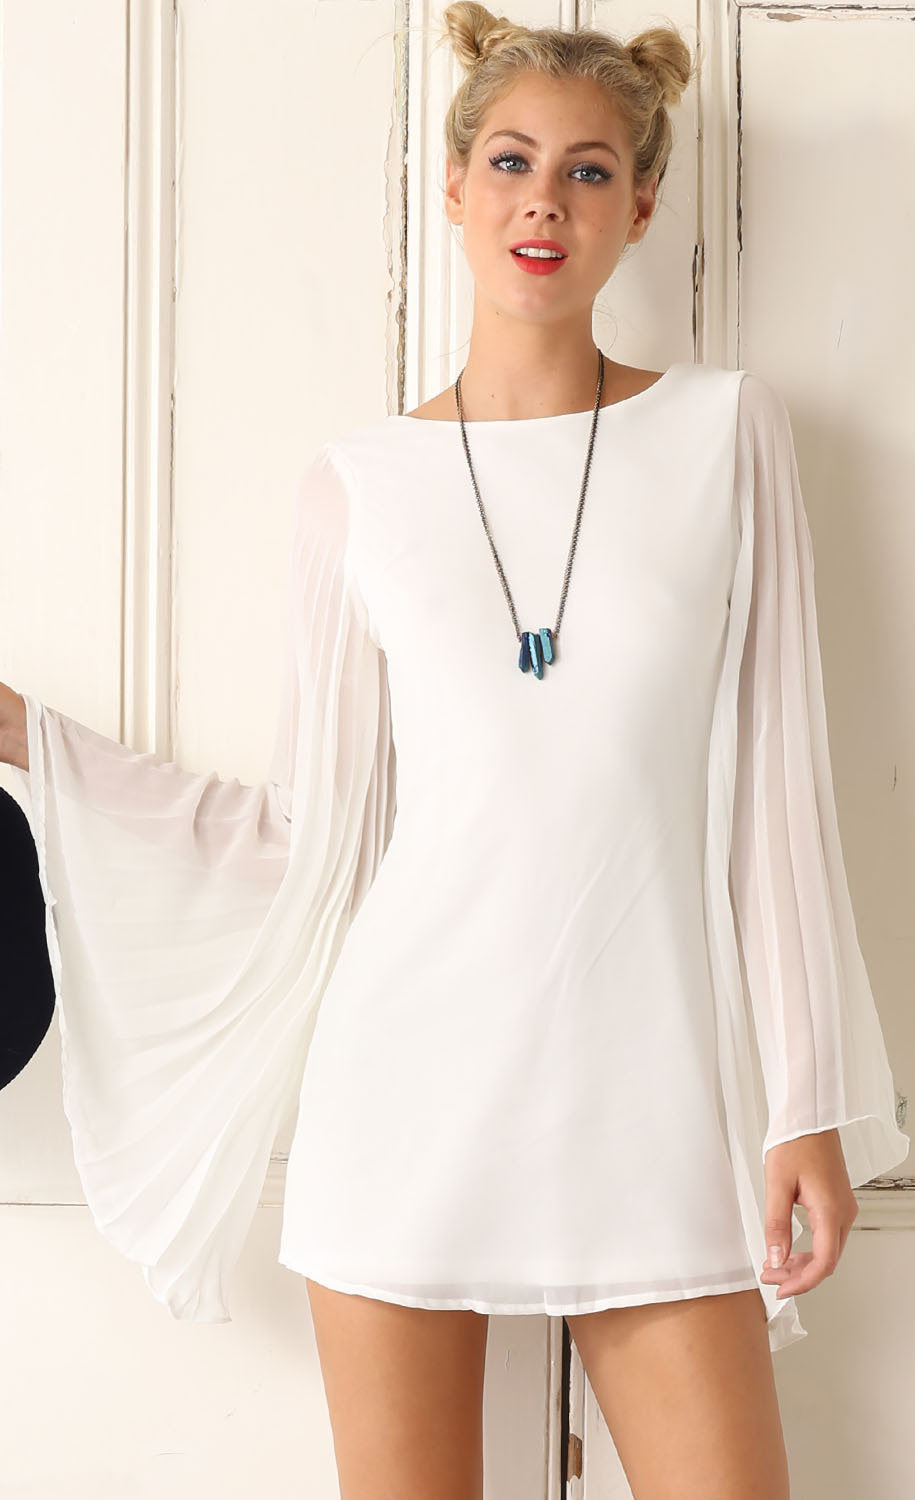 White dress chiffon - Get Quotations White Chiffon Dress With Flared Sleeves 2015 Winter Just Arrivals European And American Style Vintage Dress